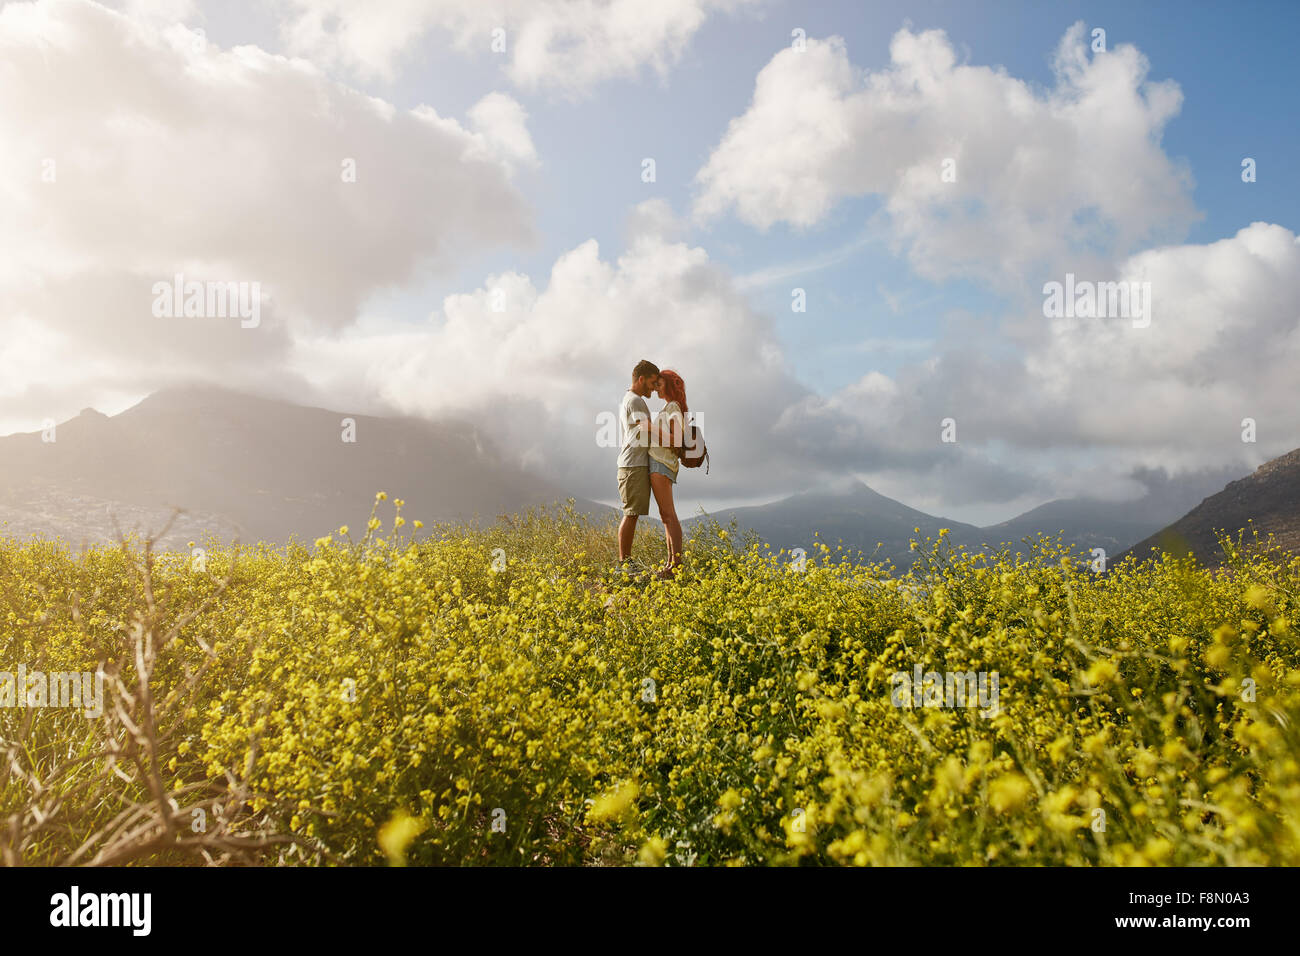 Romantic young couple embracing and  looking at each other, while standing on a hill top outdoors on a summer day. - Stock Image